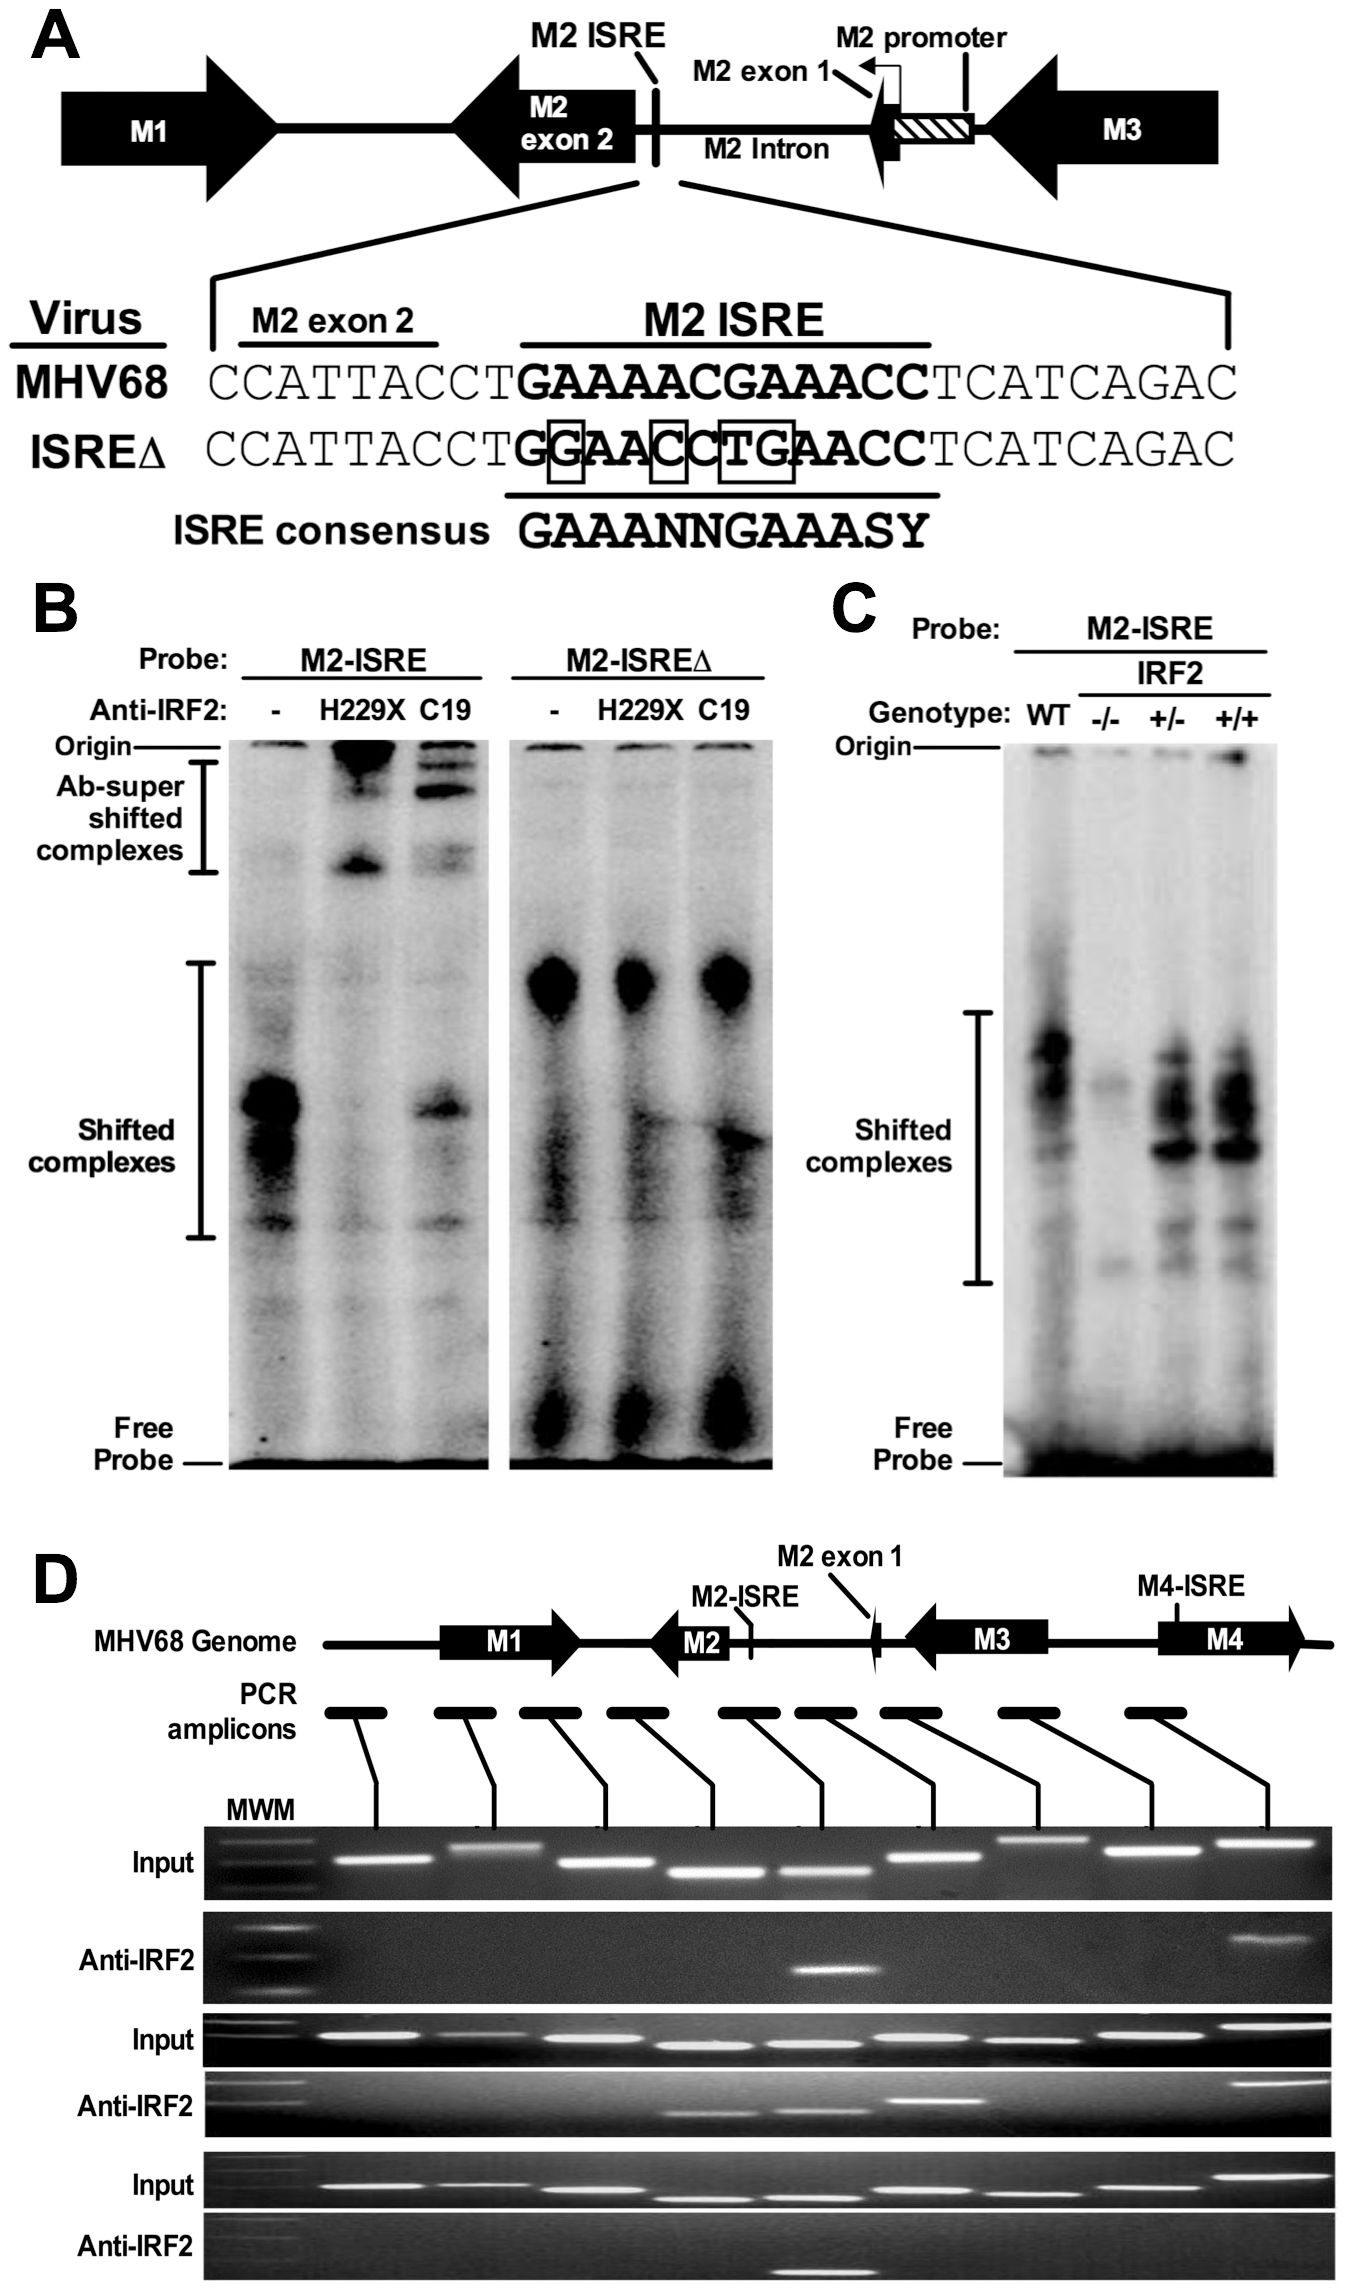 The M2 ISRE binds IRF2 <i>in vivo</i> during latency.